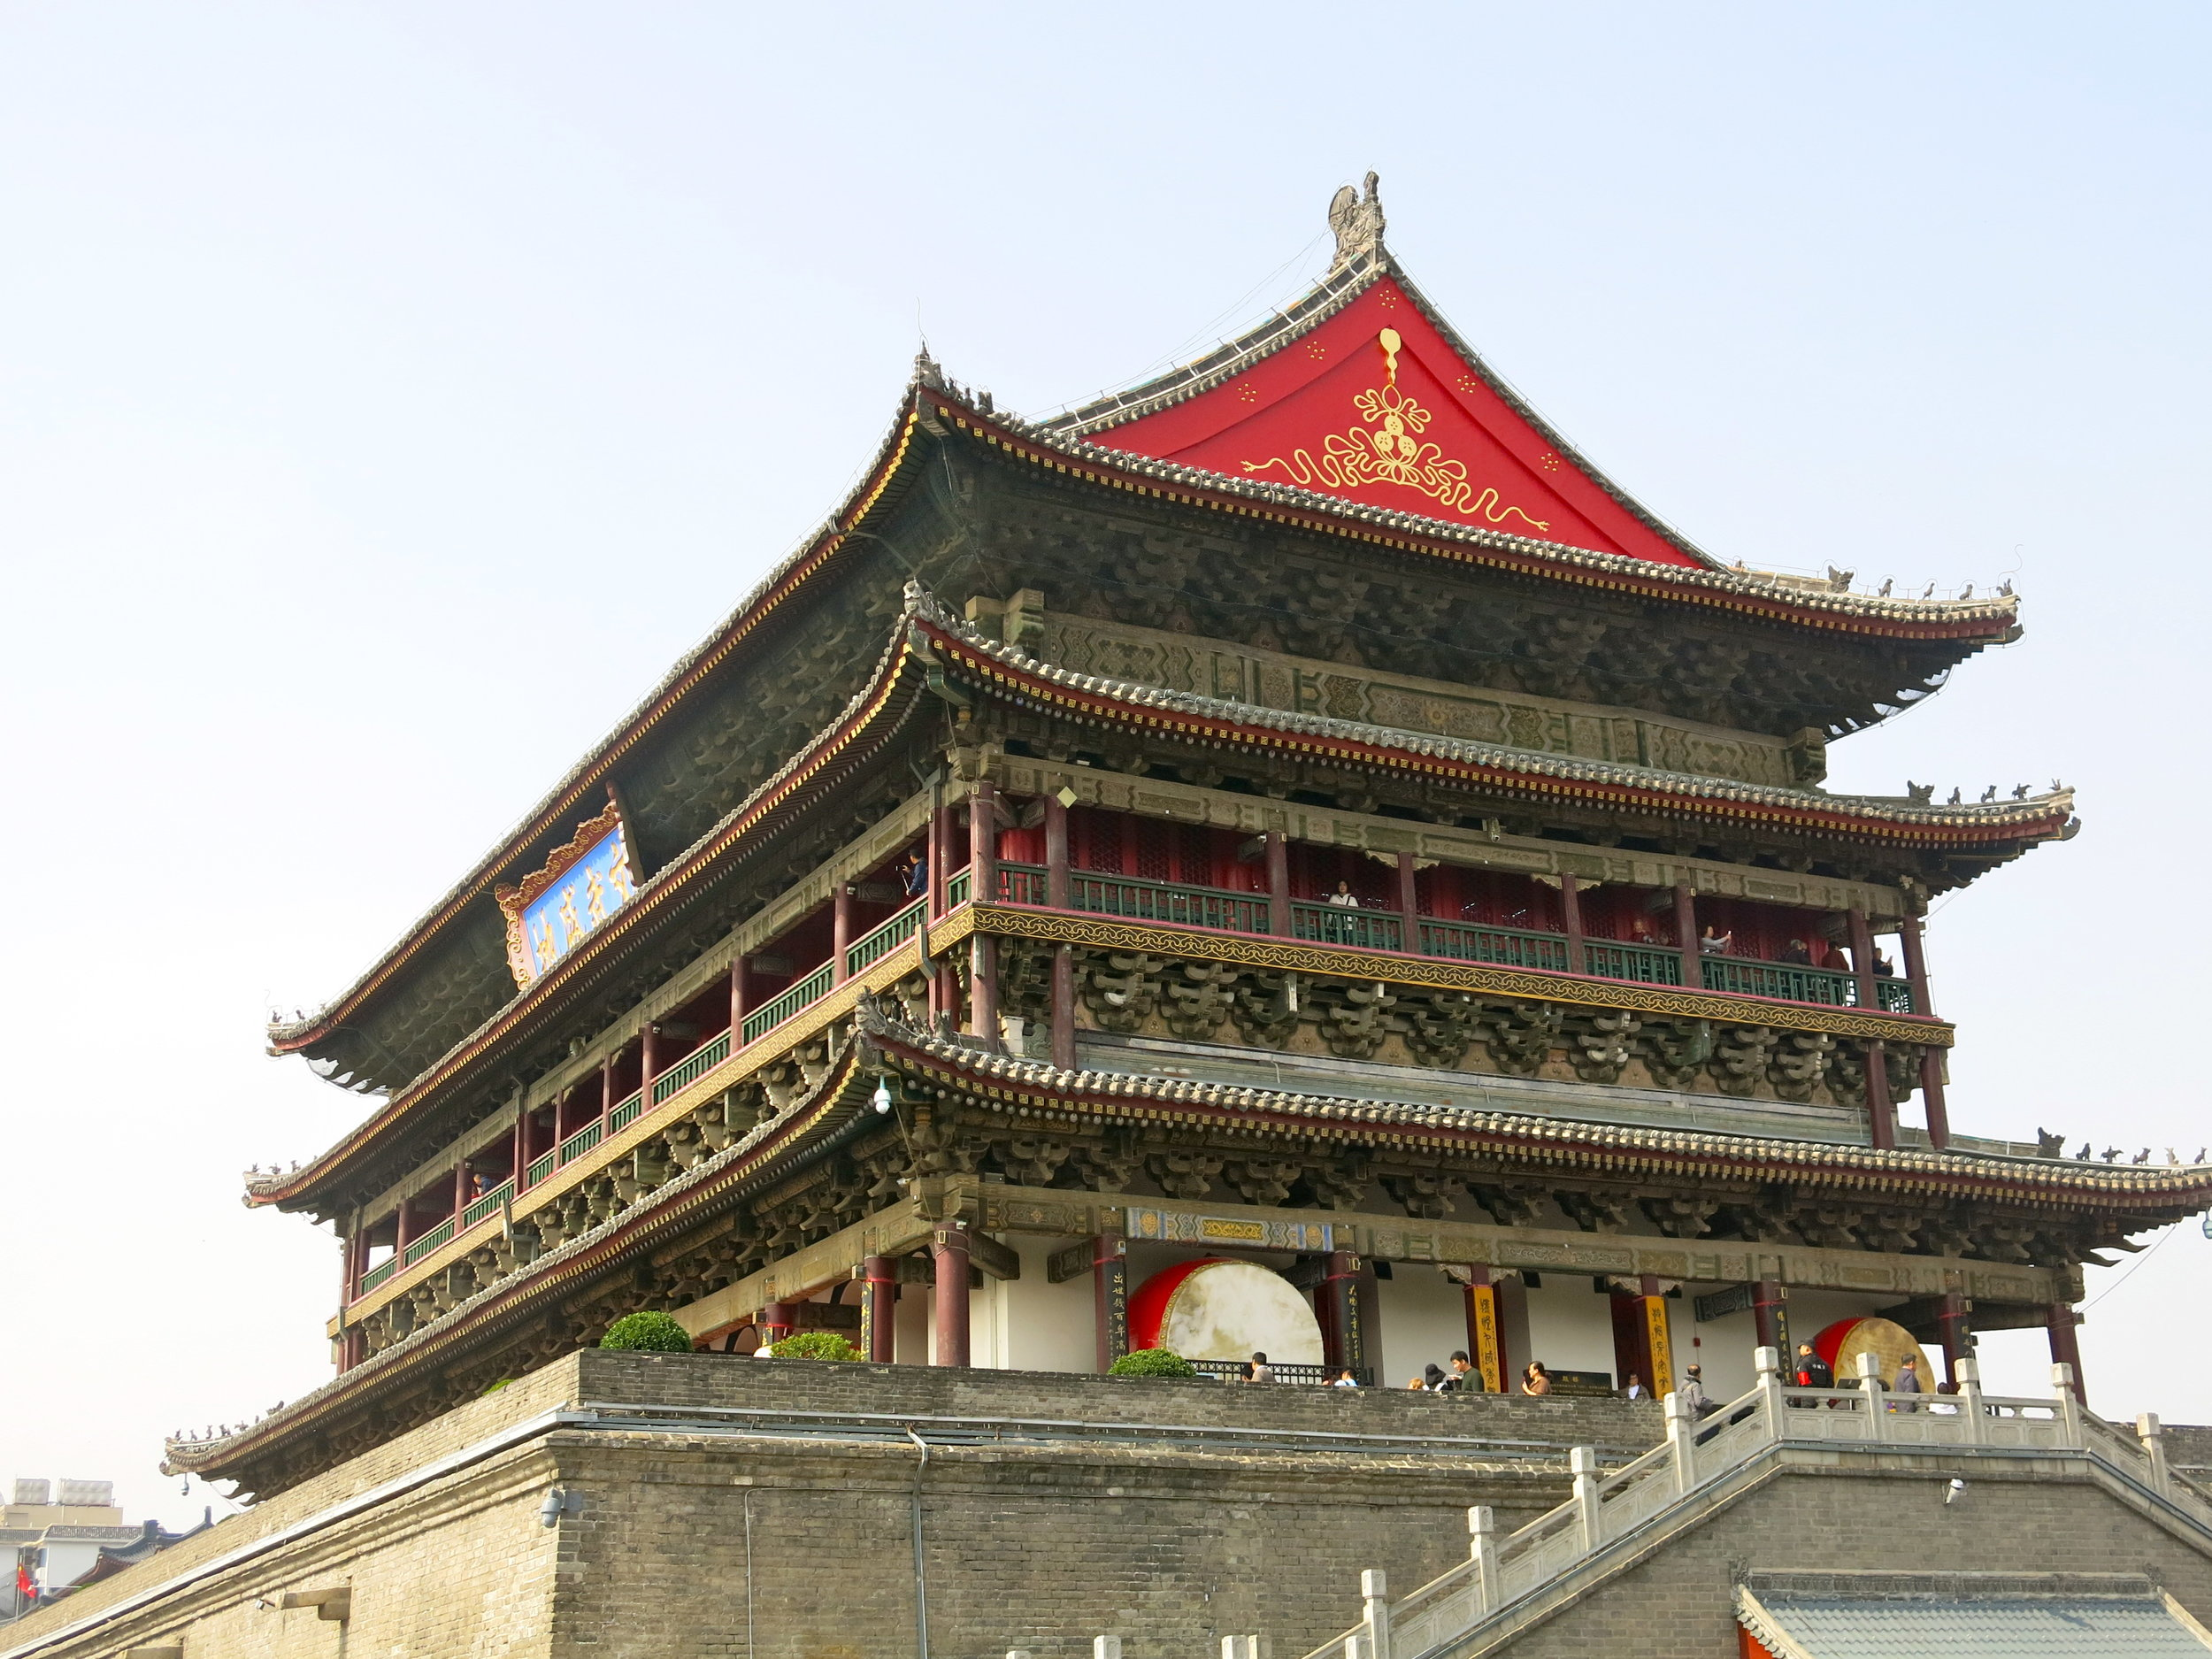 The imposing Drum tower used to indicate the end of the day